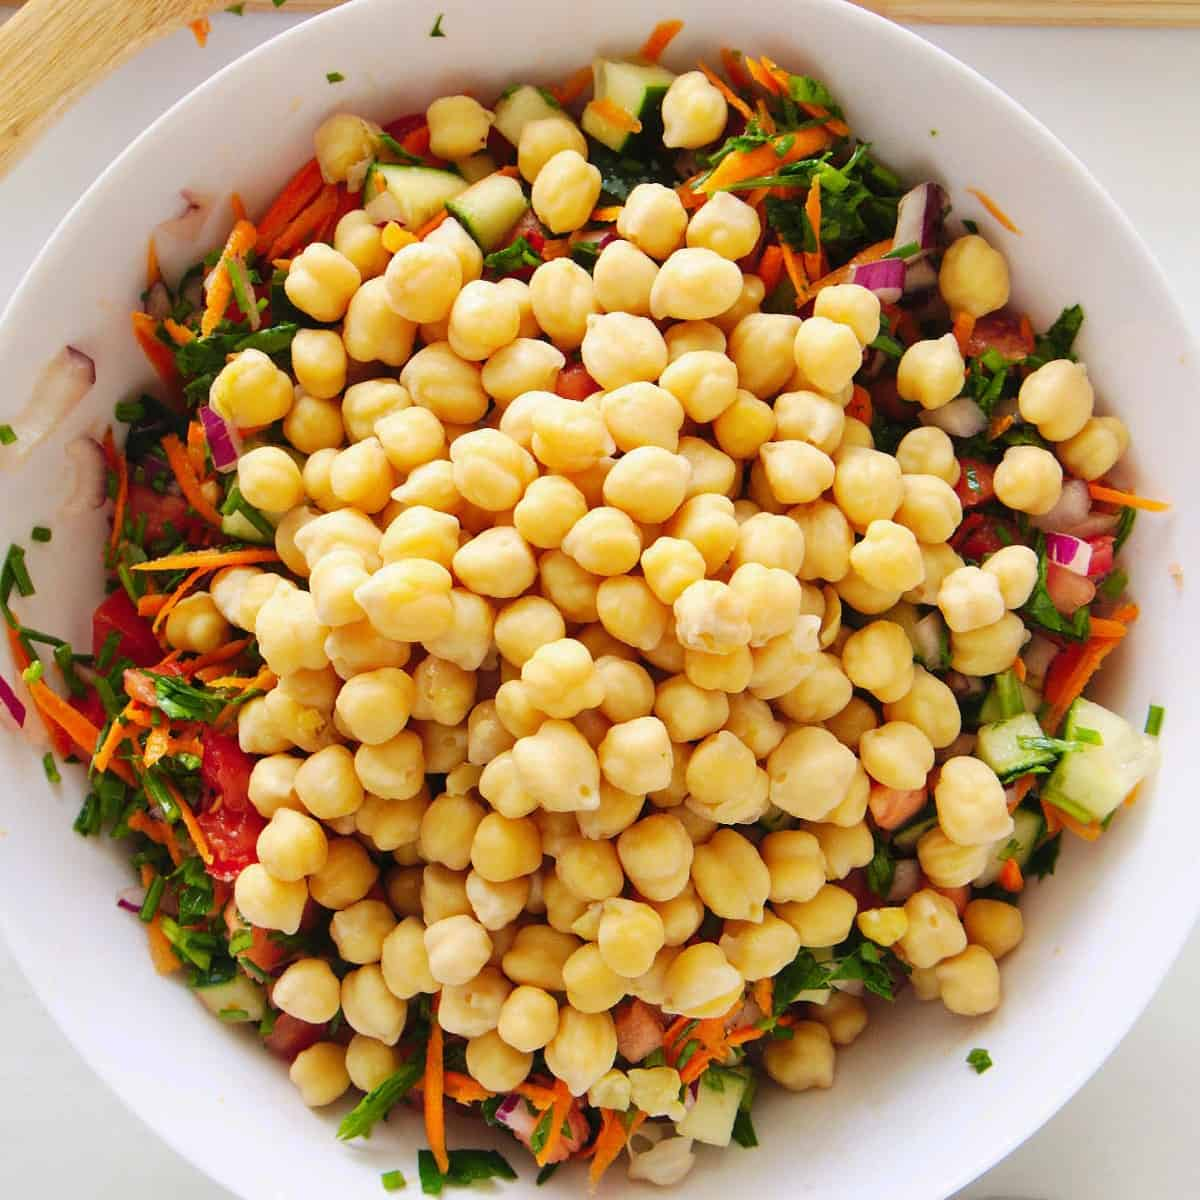 The final vegetable, canned chickpeas, is added to the salad mixture in this overhead view.